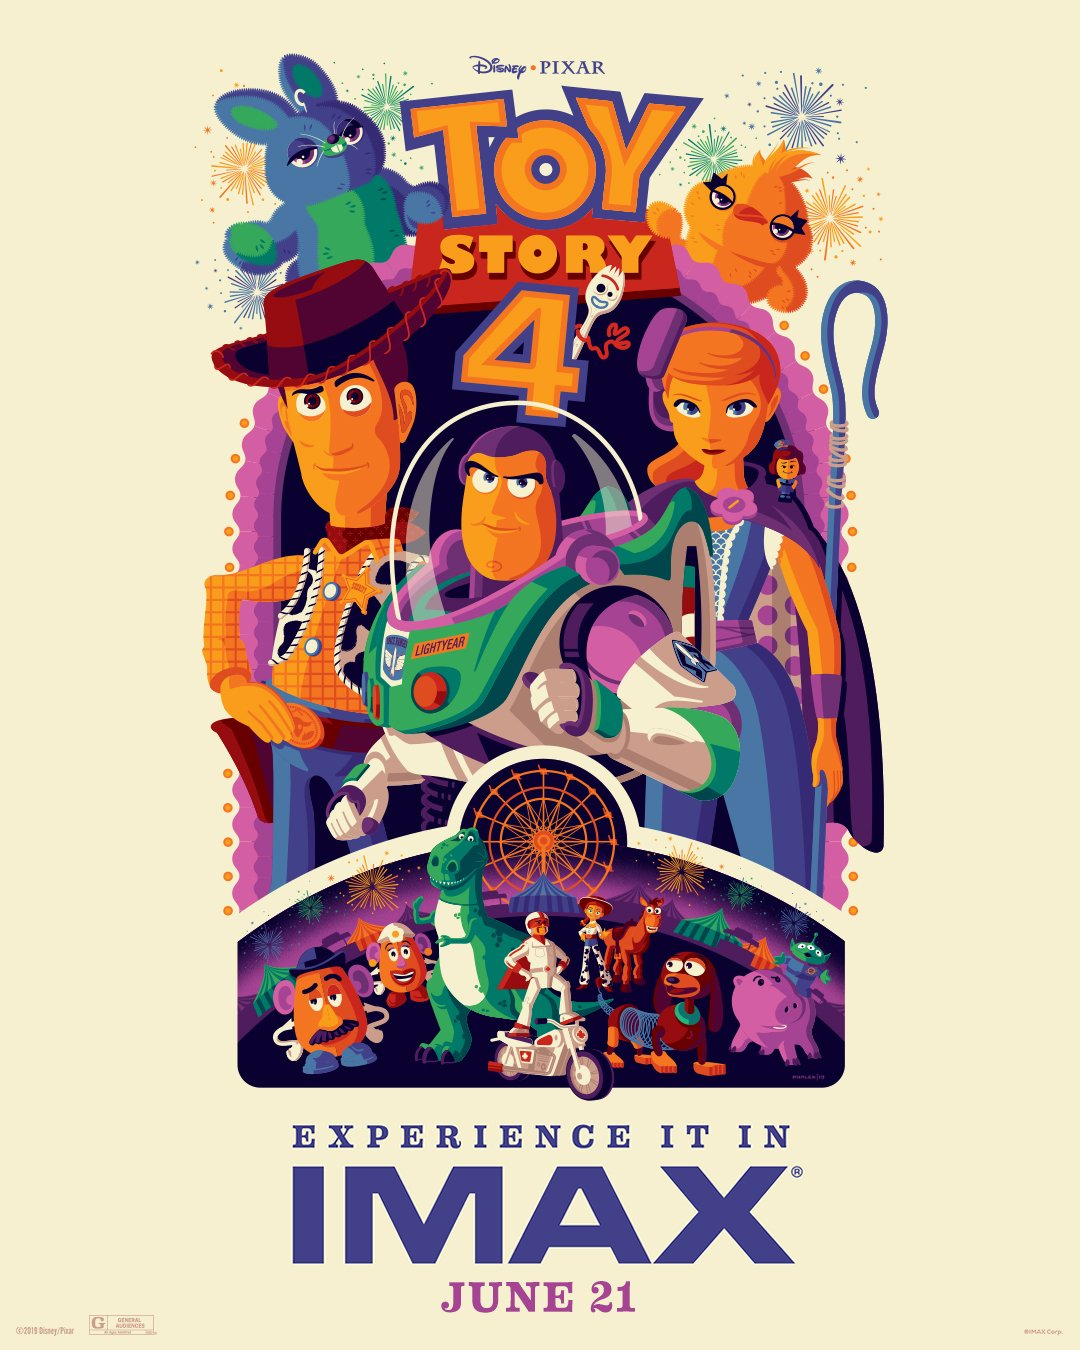 cf8d3e1a32 ... a good three weeks before the film's wide release, and IMAX has also  unveiled a new poster which spotlights the movie's array of colorful  characters: